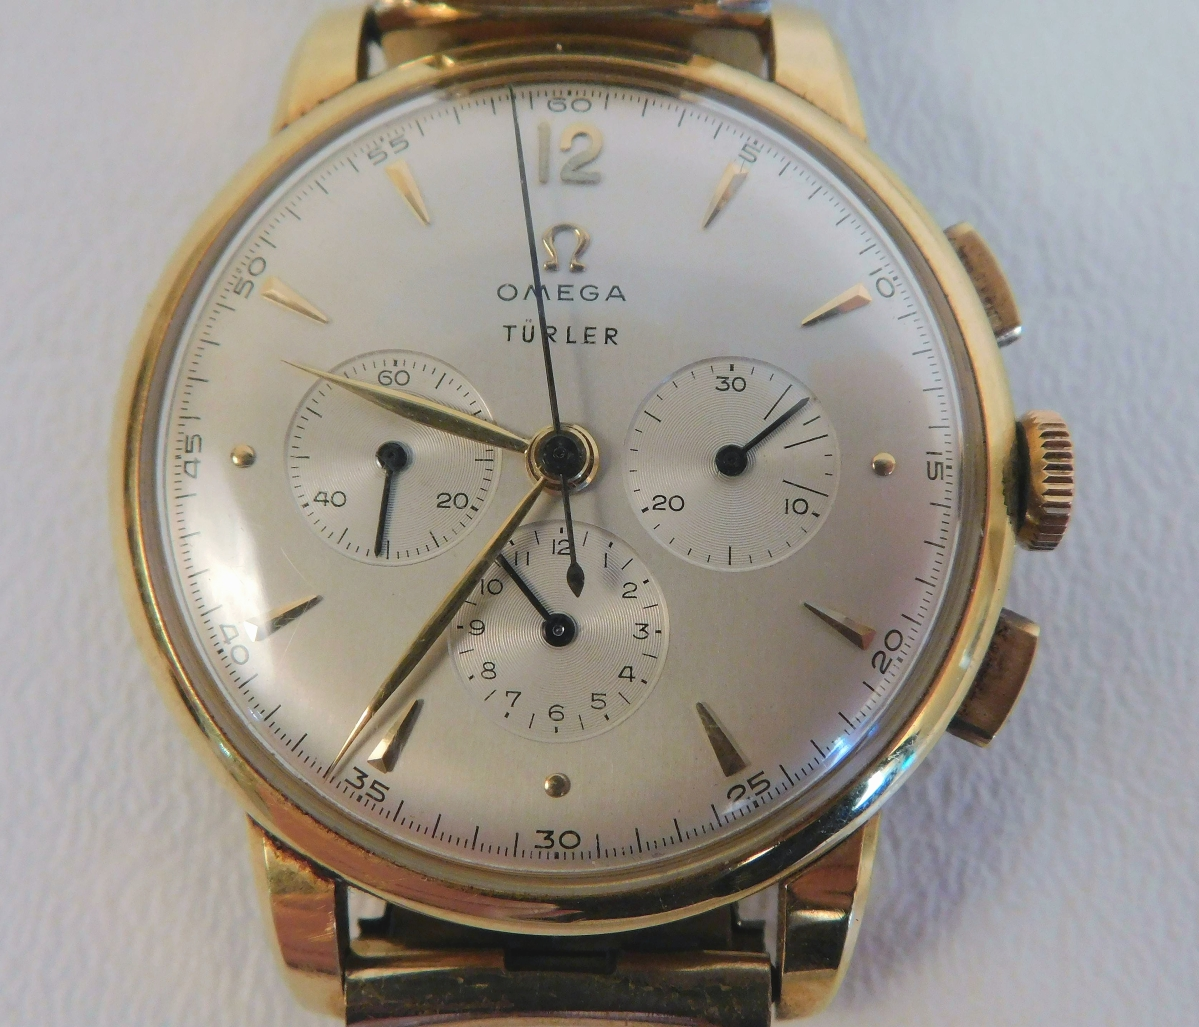 """This Omega 18K gold chronometer Turler wristwatch was made in the late 1940s, was engraved """"Selden James Dickinson"""" and came from a Nantucket, Mass., estate. A collector in St Petersburg, Fla., took it for $6,100 ($ ,000)."""